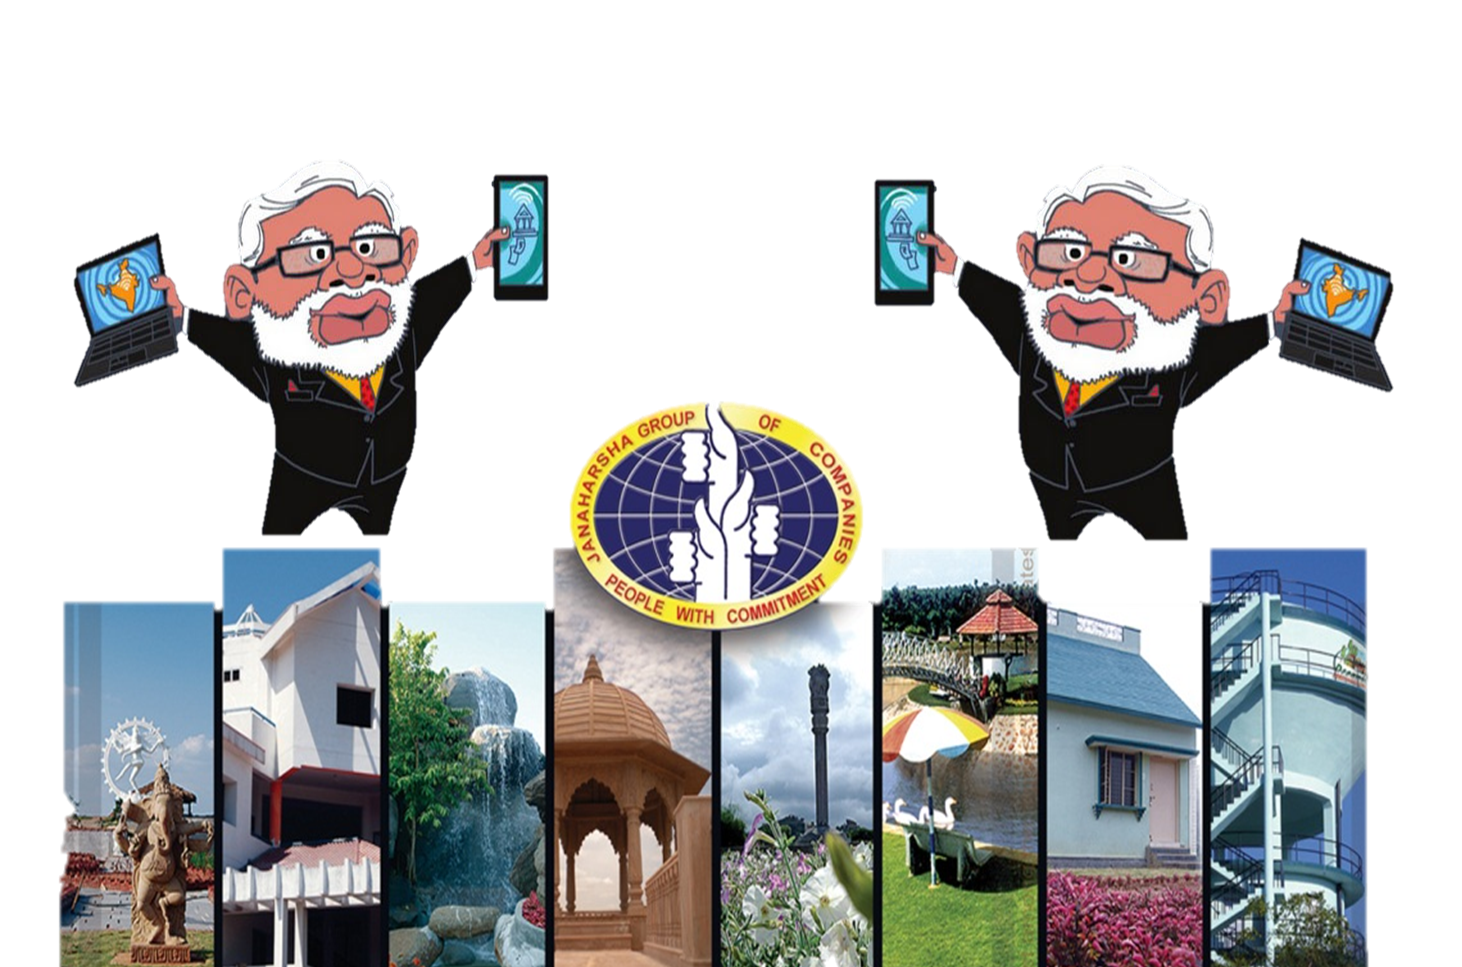 Modi Brand Technology Cartoon Narendra PNG Image High Quality PNG Image